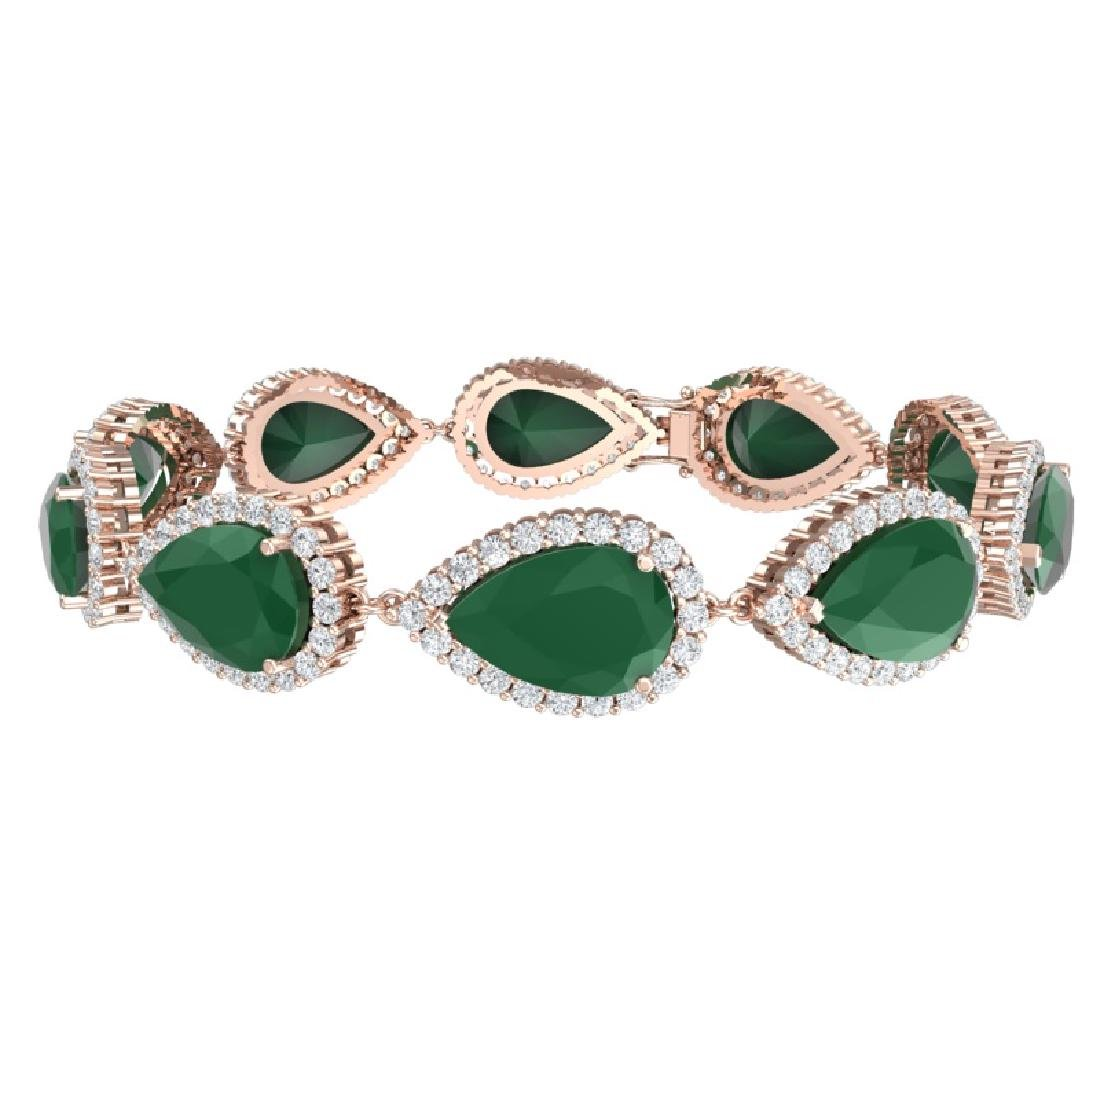 42 CTW Royalty Emerald & VS Diamond Bracelet 18K Rose - 3